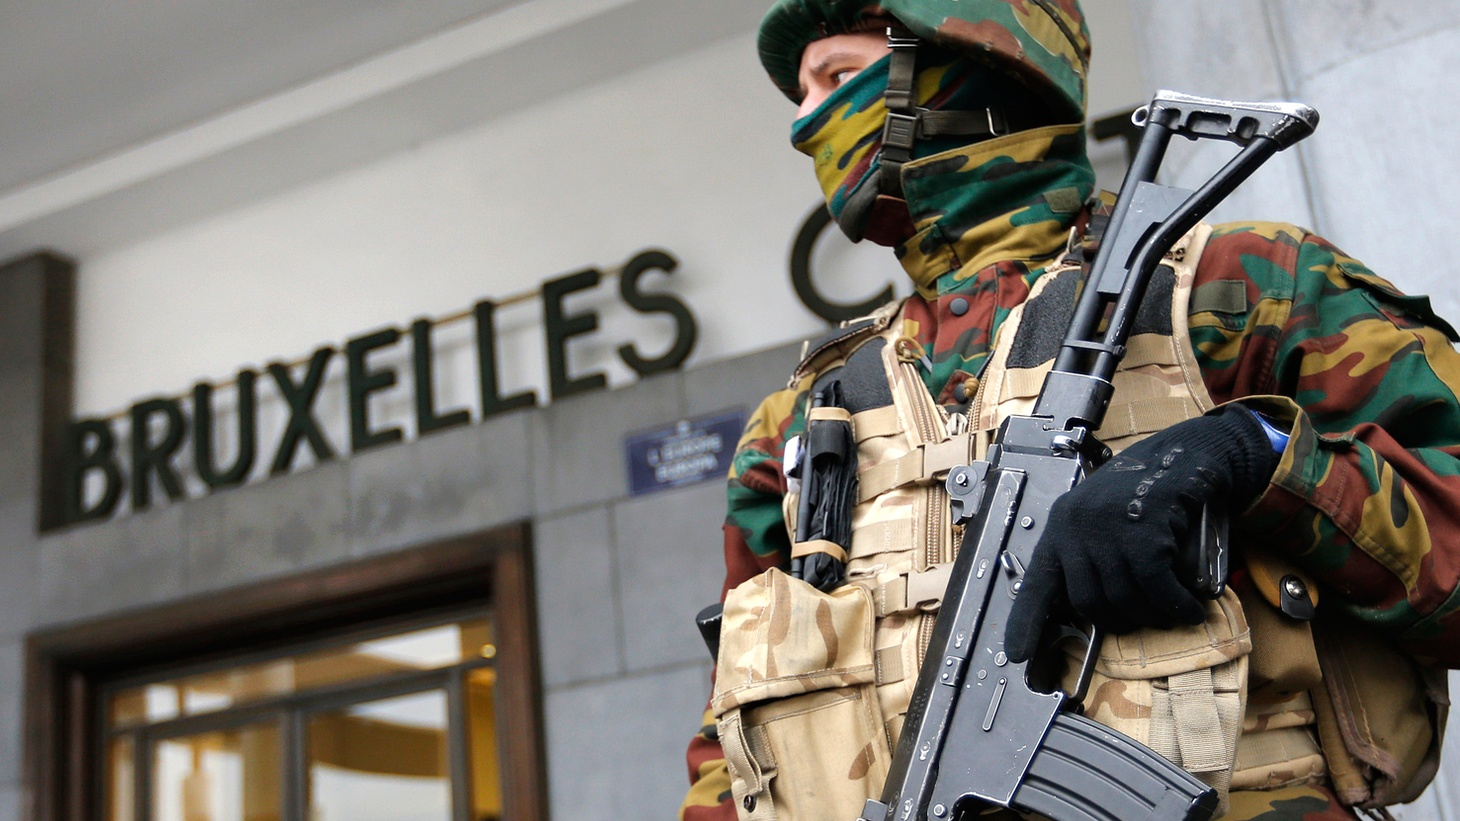 """The """"unified"""" countries of Europe are being challenged to crack down on terrorists within their own borders—while preserving the values of liberal democracy. We update the scene in Brussels after the second terrorist attack in just four months and hear the response of candidates for the White House who've seized the issue for their campaigns."""